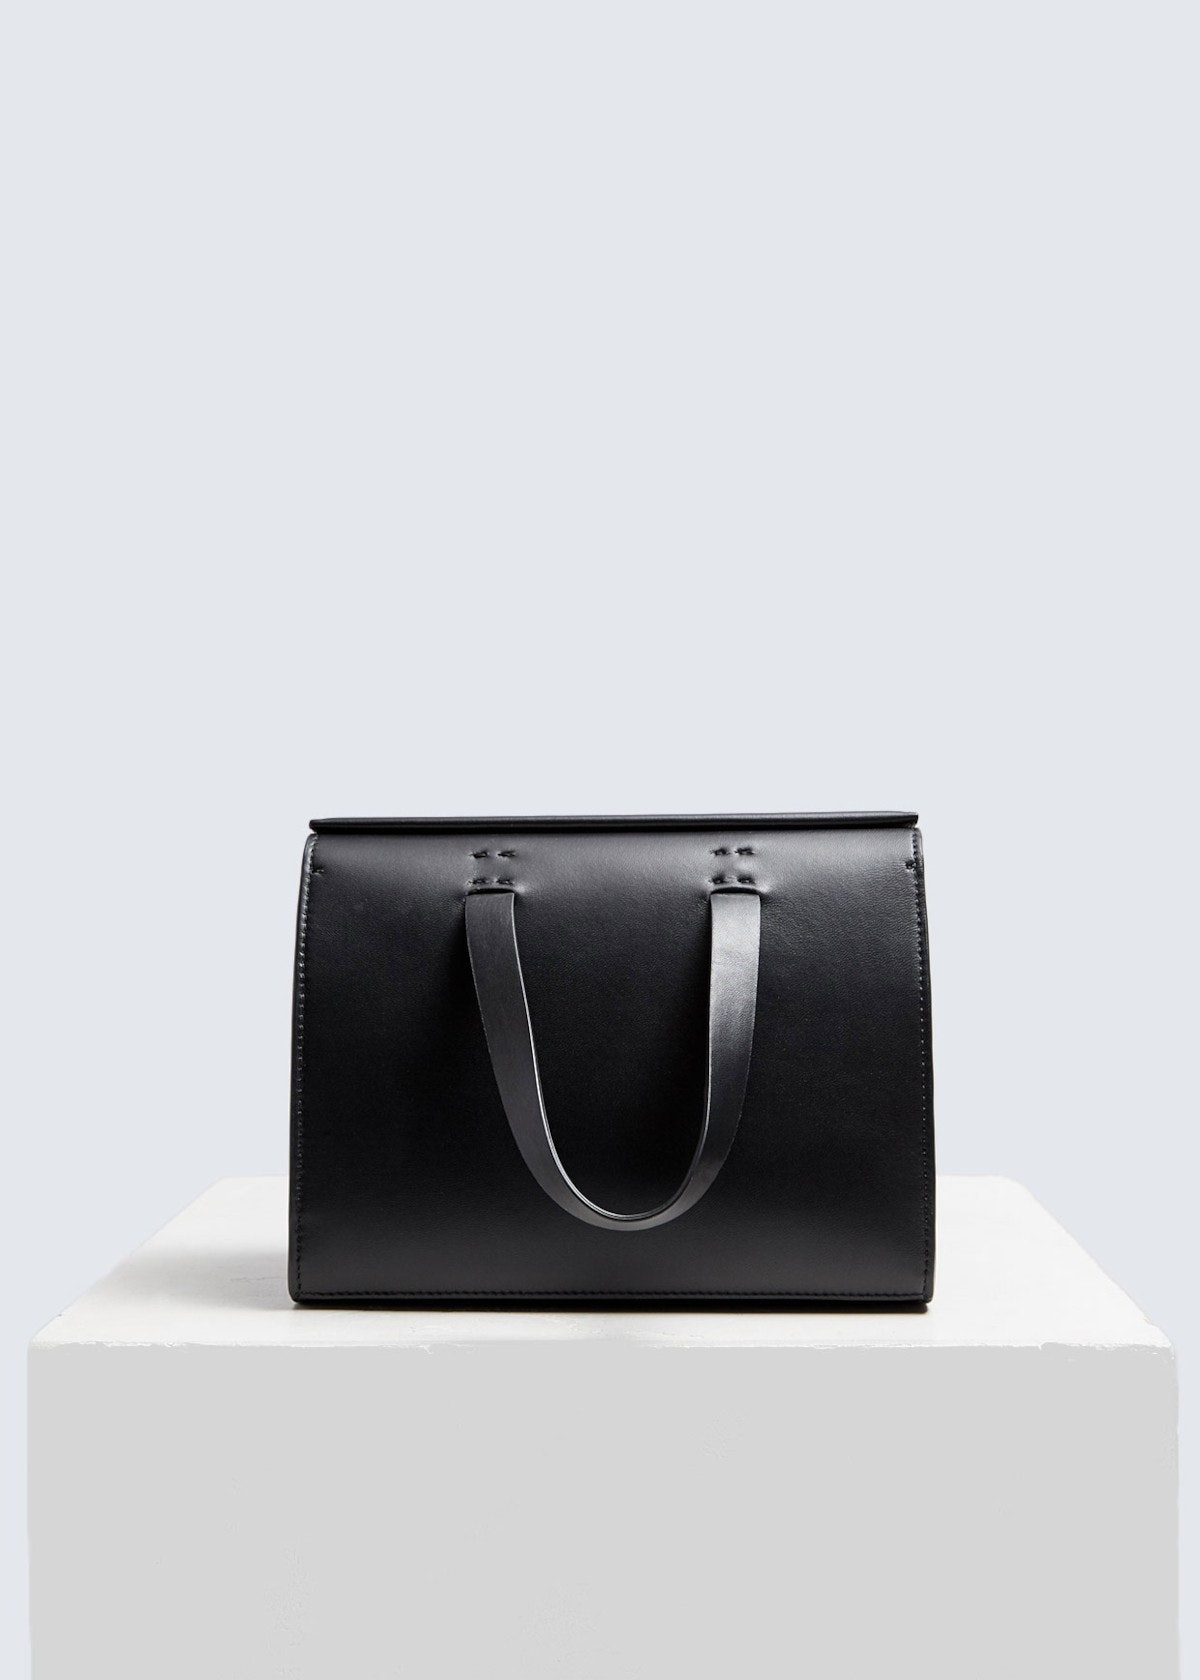 427fe38da0ca 4 Cool Bag Brands To Lust Over In Totokaelo s Thriving Accessories Section